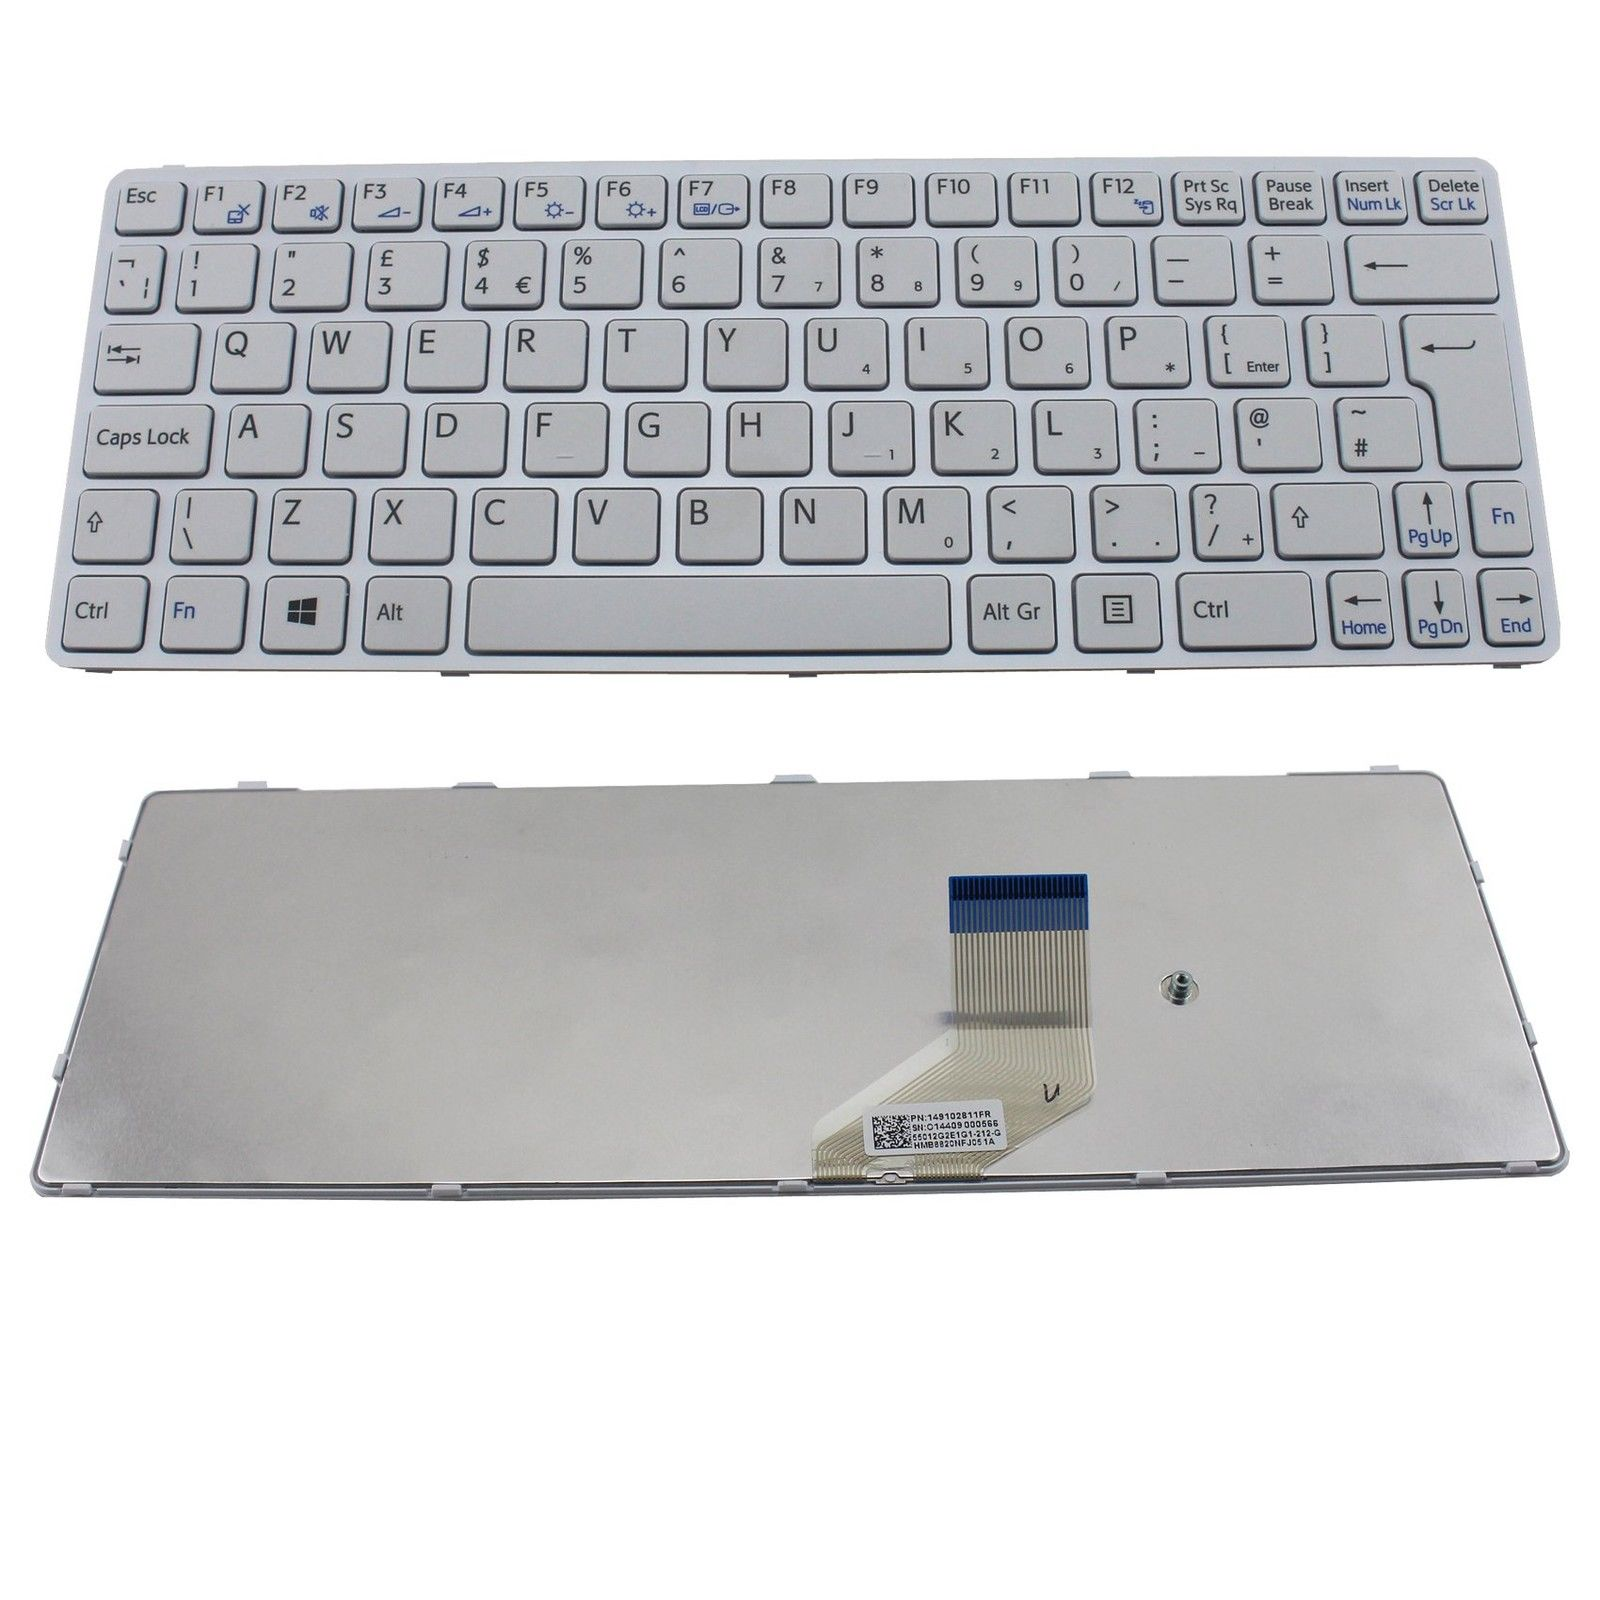 SONY SVE11 Keyboard White